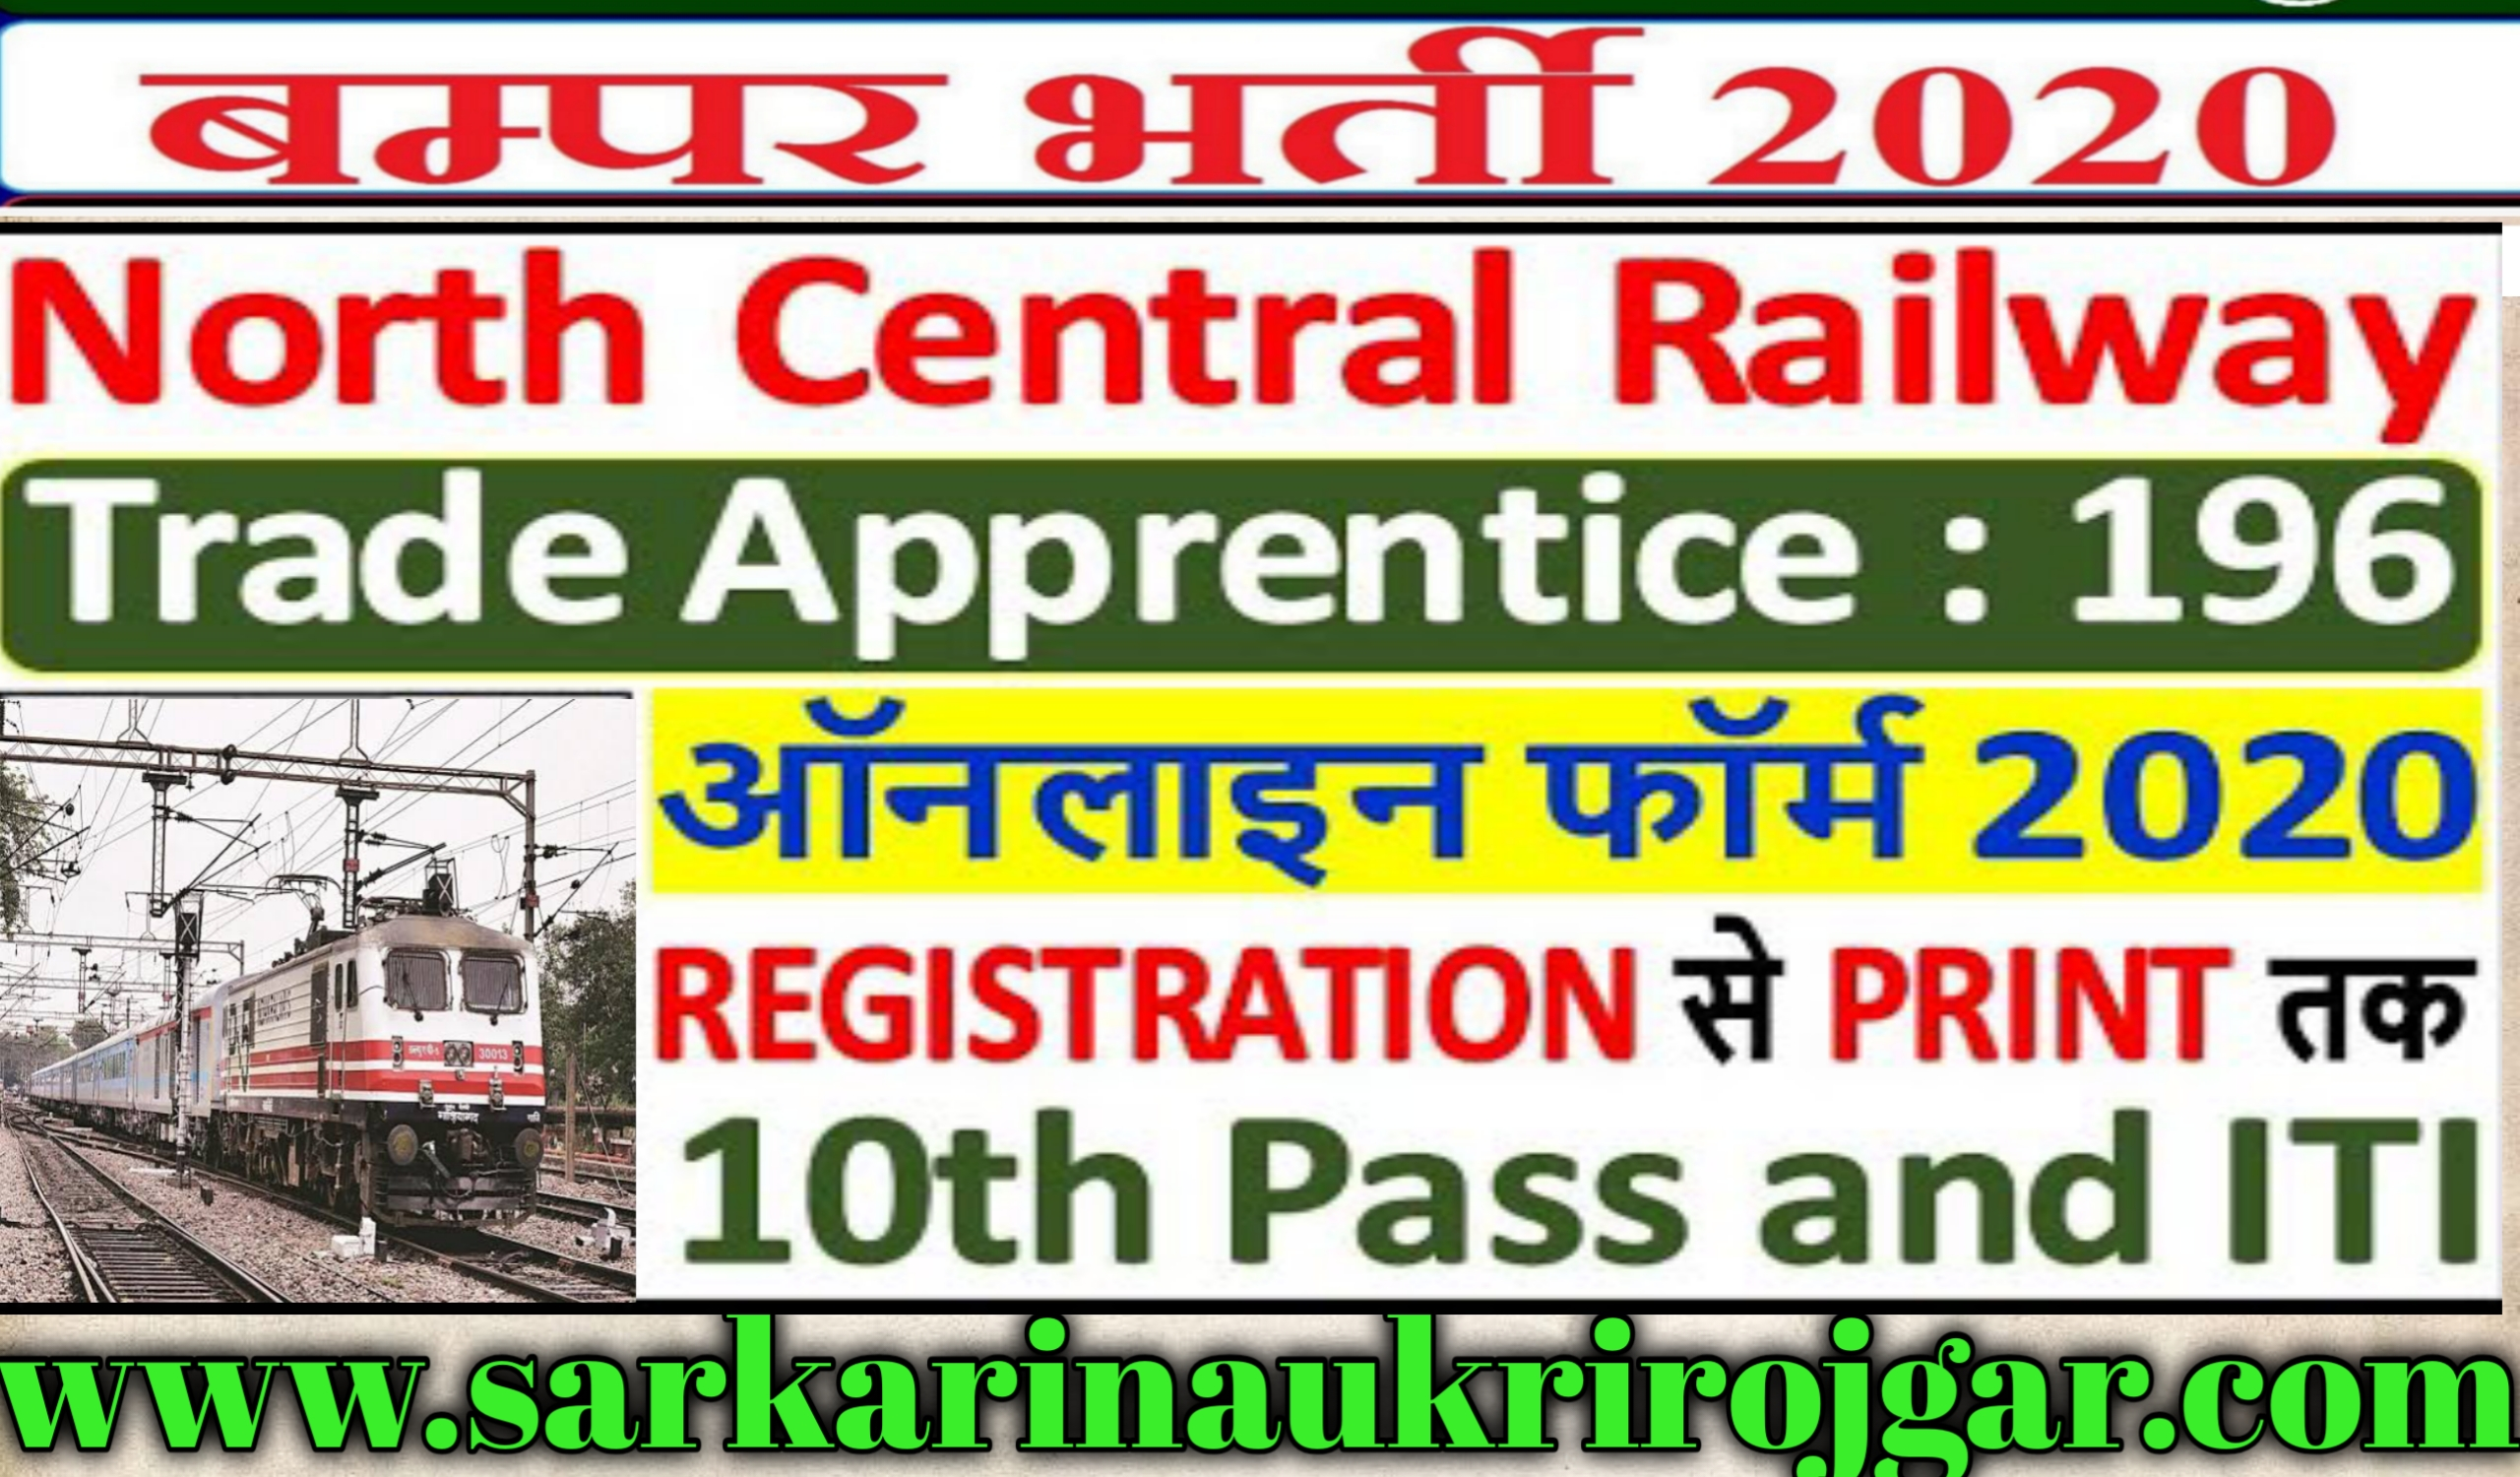 North Central Railways Act Apprentice Recruitment form 2020